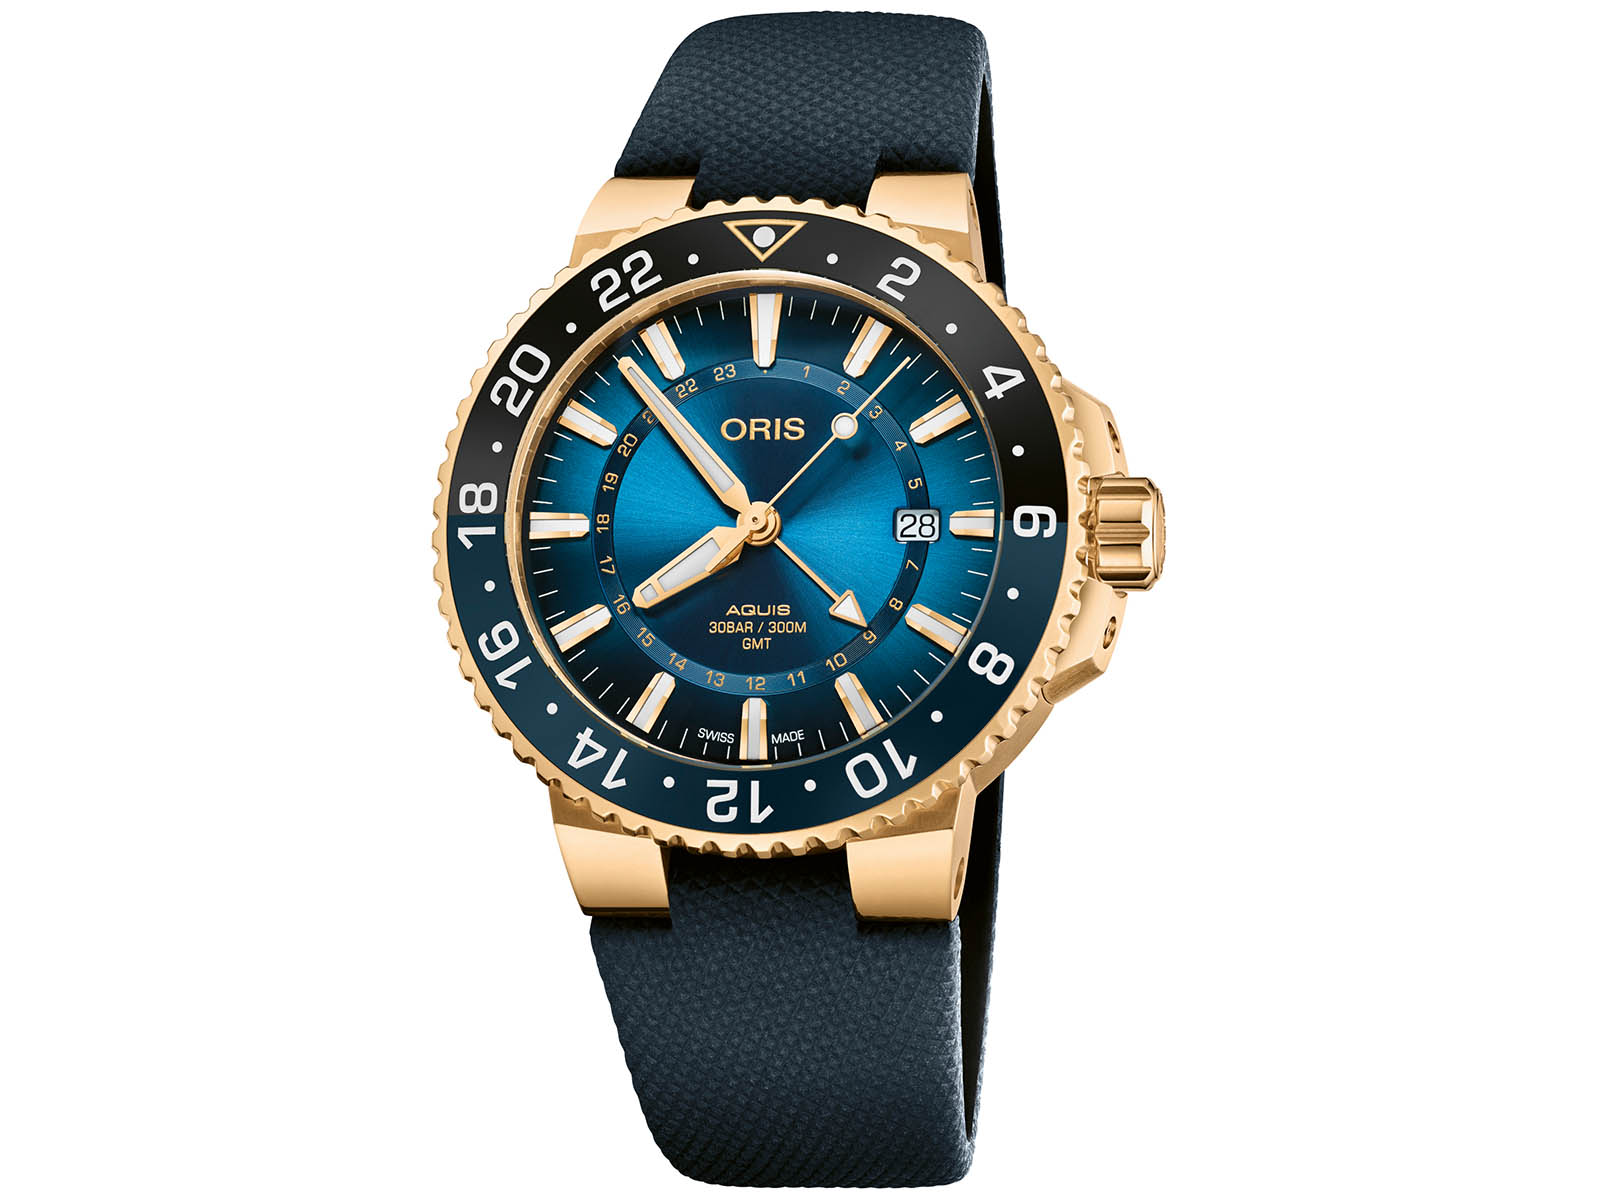 01-798-7754-6185-set-oris-carysfort-reef-limited-edition-3.jpg